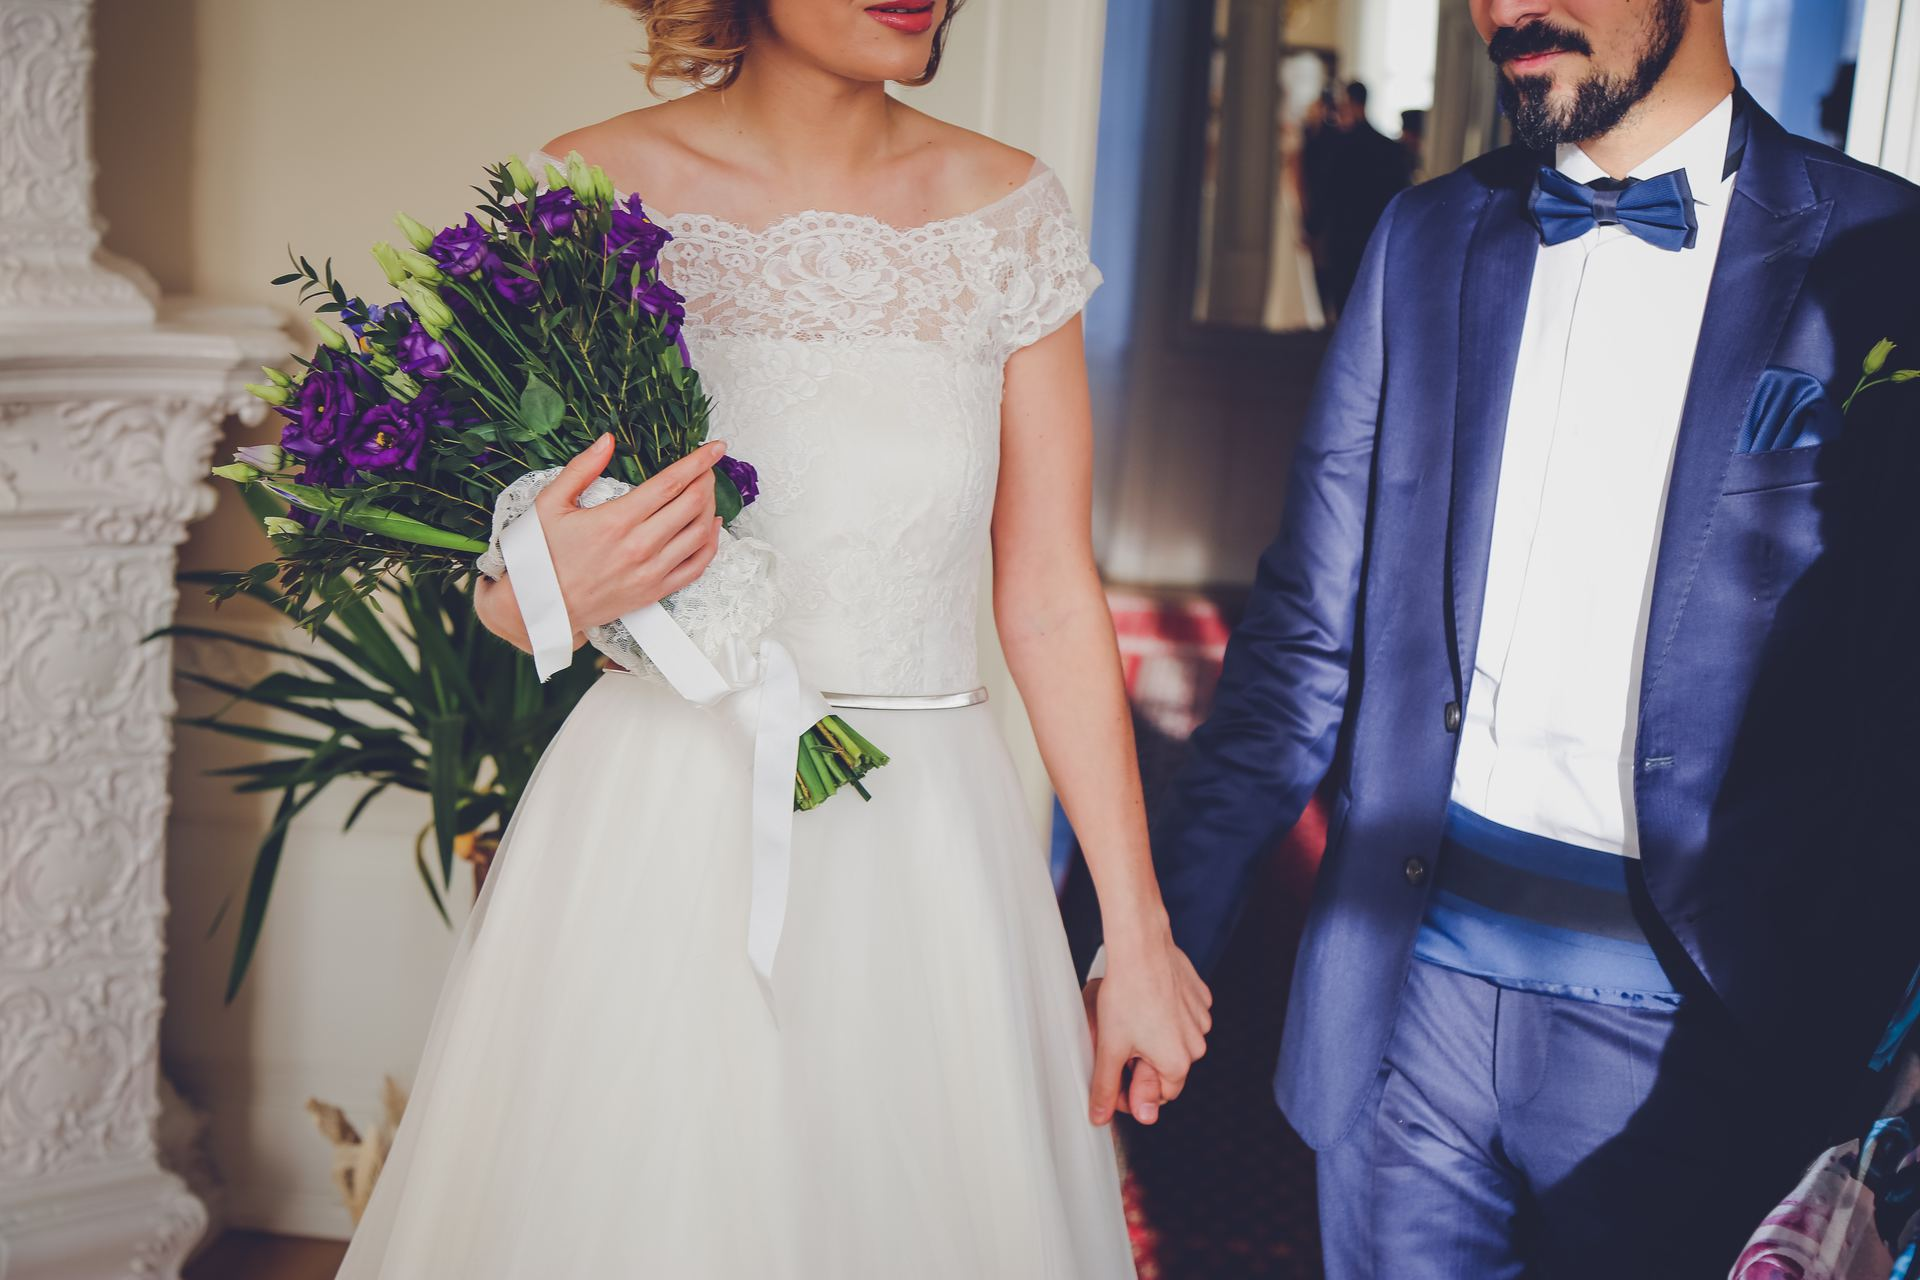 Breaking the rules: Who will walk down the aisle first?